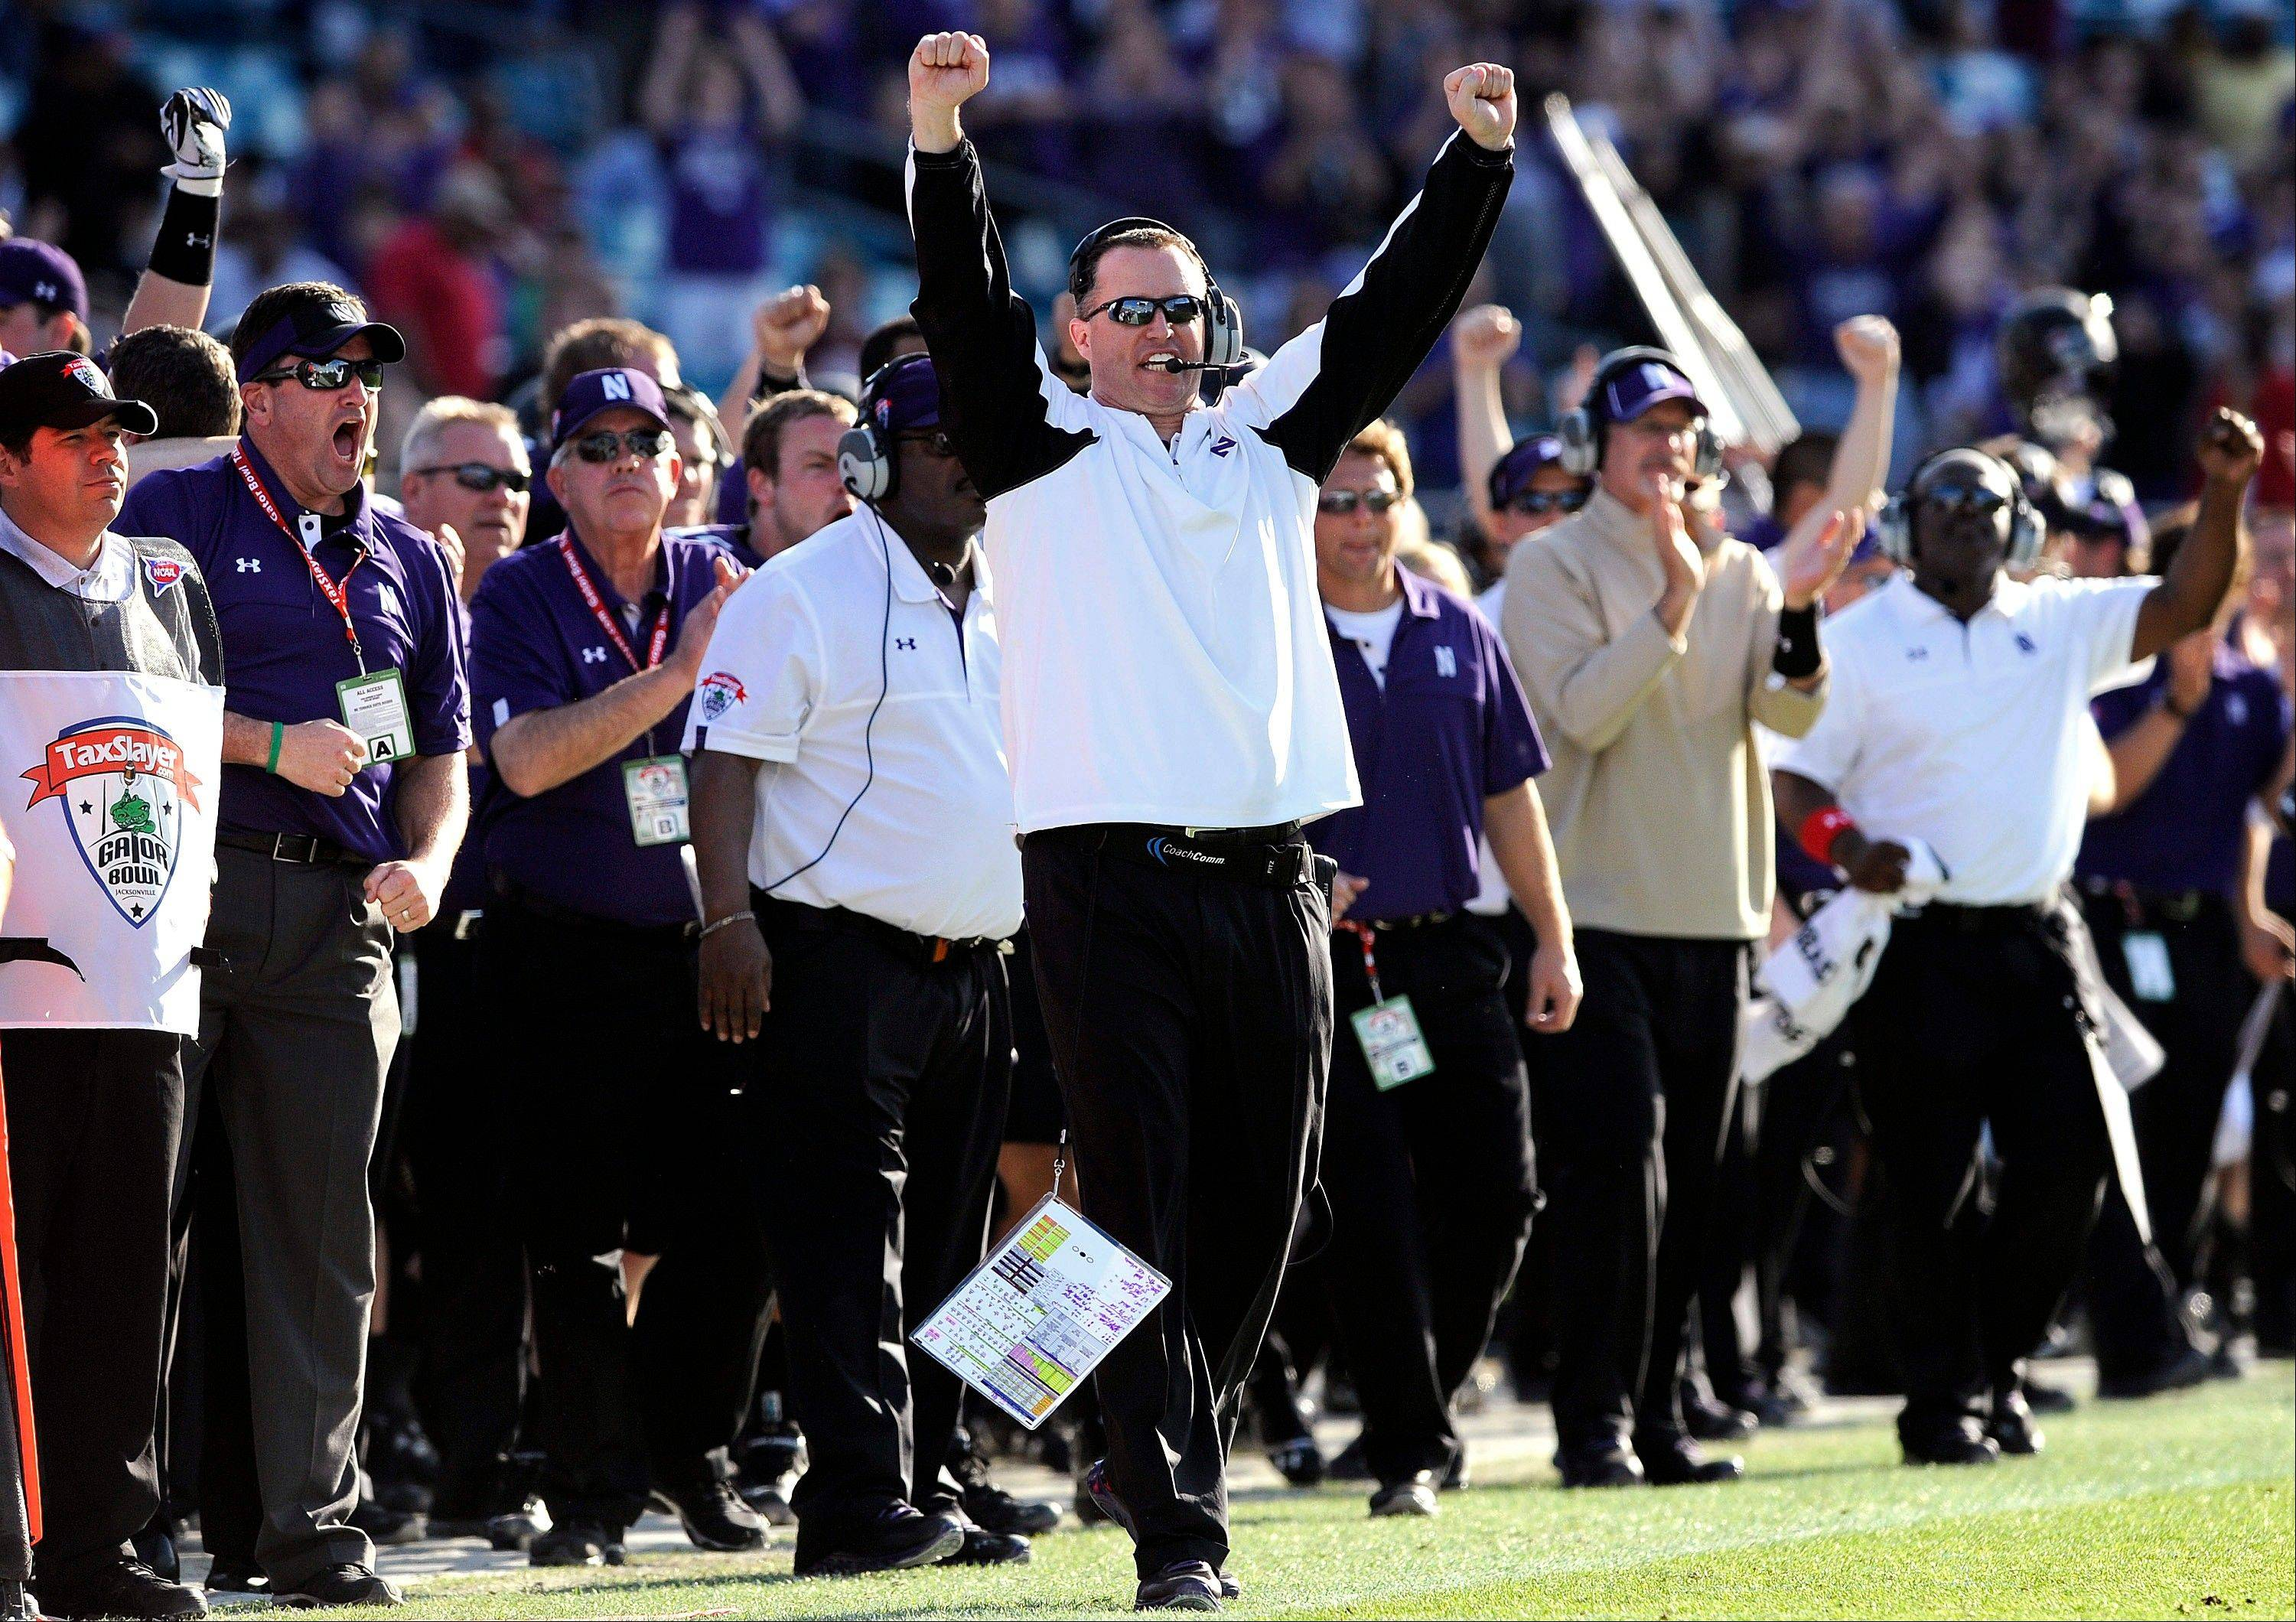 Northwestern head coach Pat Fitzgerald celebrates a first down in the closing seconds of the second half of the Gator Bowl NCAA college football game against Mississippi State, Tuesday, Jan. 1, 2013 in Jacksonville, Fla. Northwestern won 34-20.